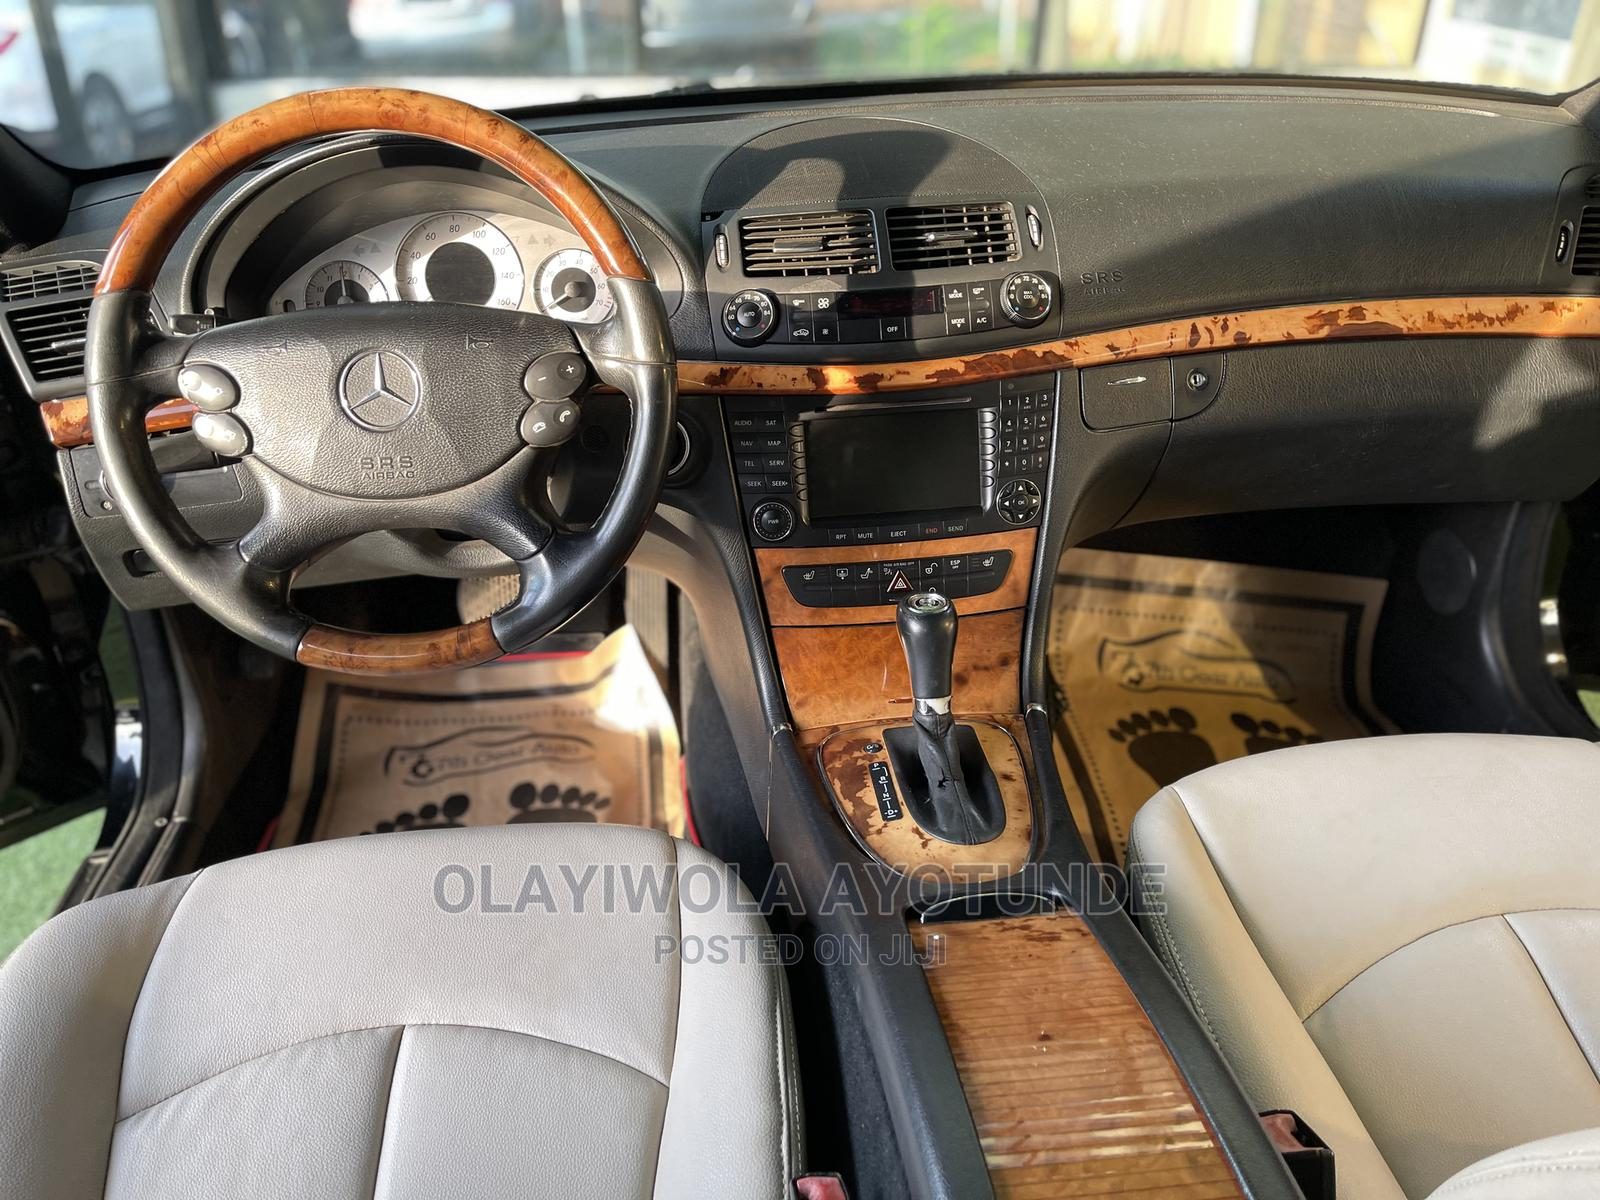 Mercedes-Benz E350 2008 Black   Cars for sale in Central Business District, Abuja (FCT) State, Nigeria